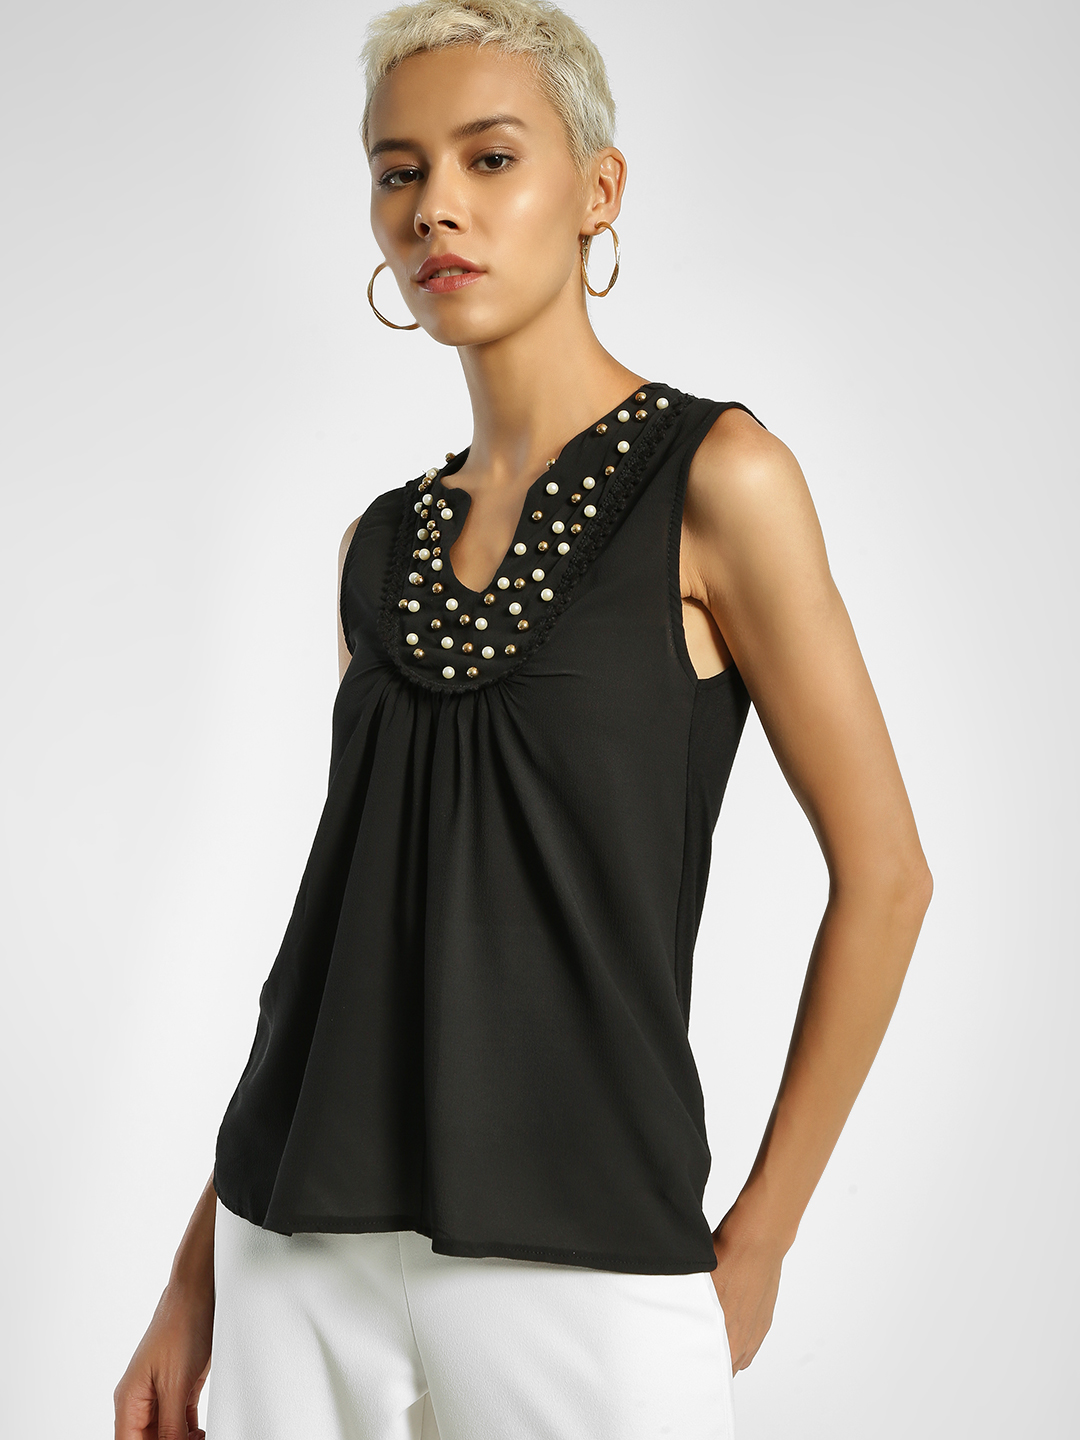 Privy League Black Pearl Embellished Sleeveless Top 1